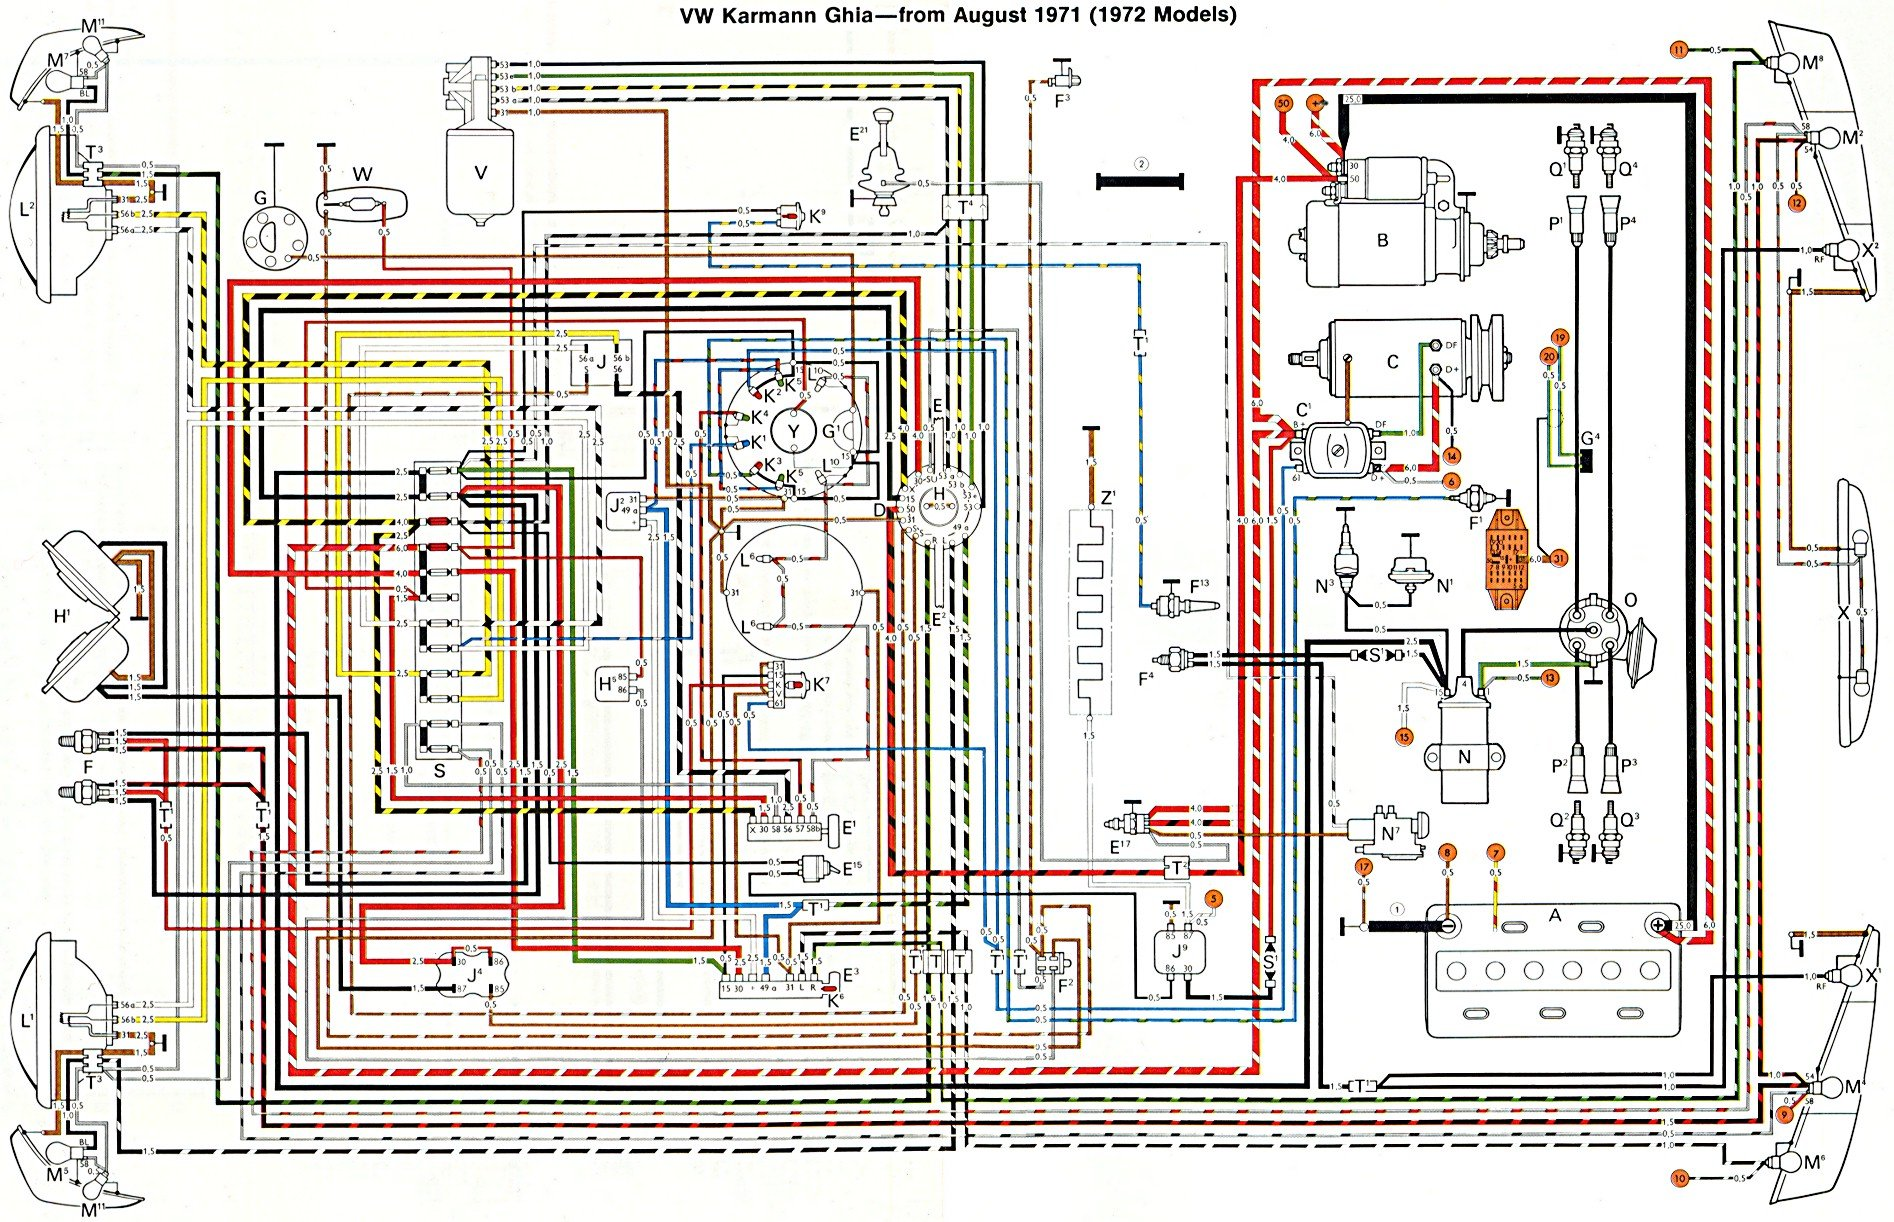 72ghia thesamba com karmann ghia wiring diagrams 1968 vw type 3 wiring diagram at gsmx.co